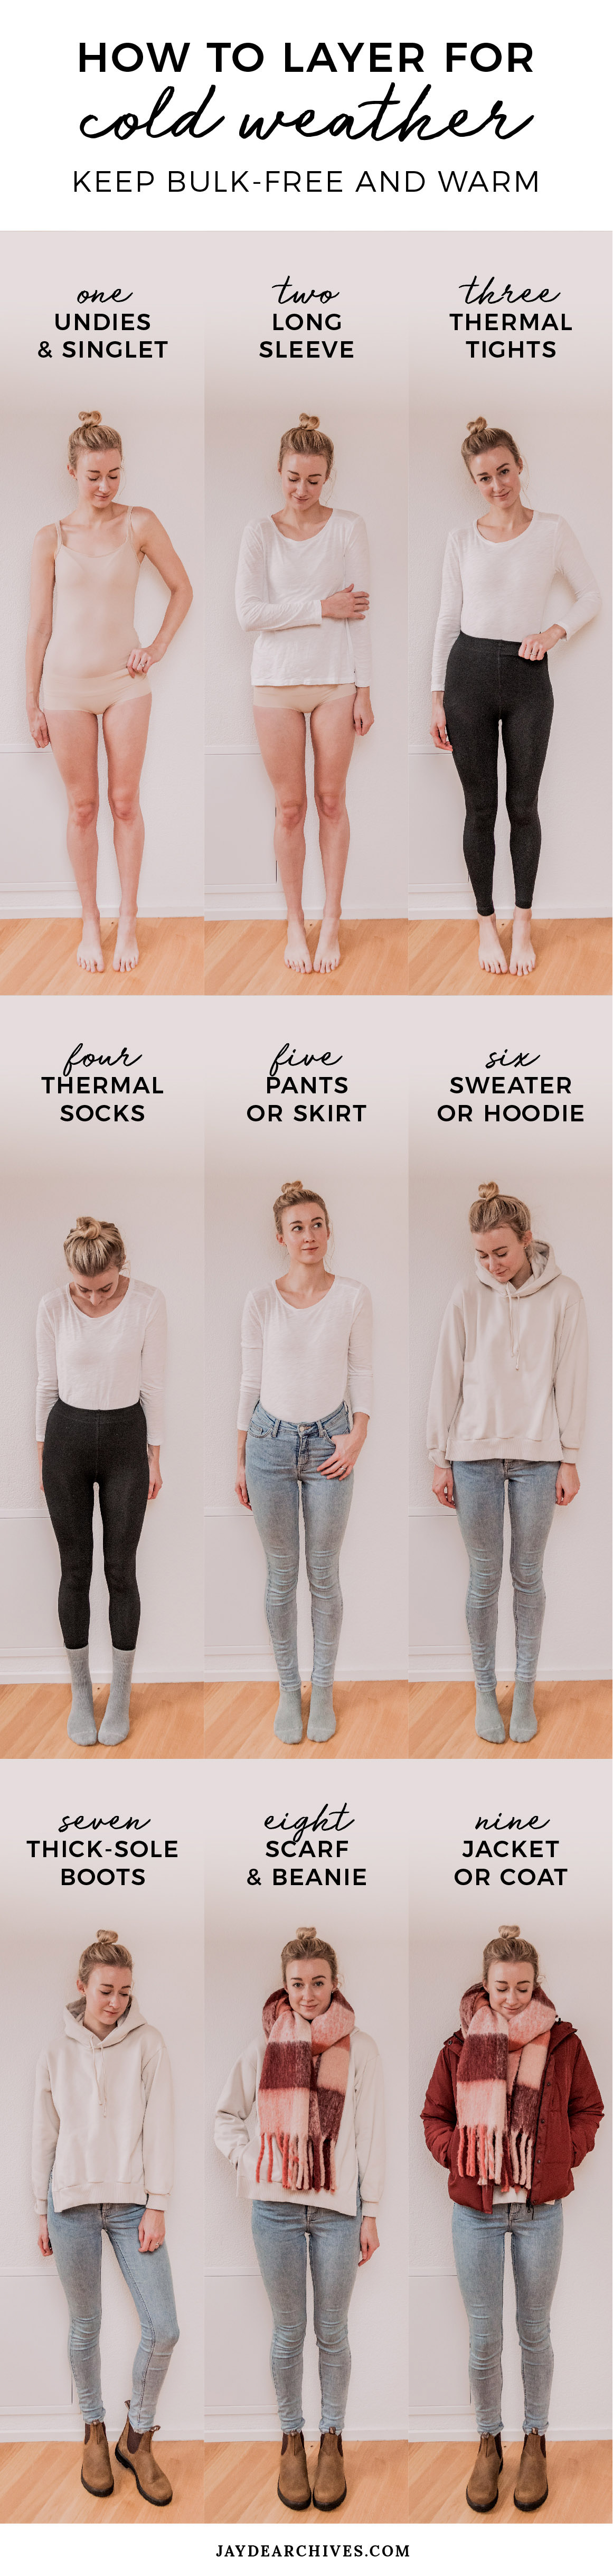 How To Layer Clothes For Cold Weather Bulk Free And Warm